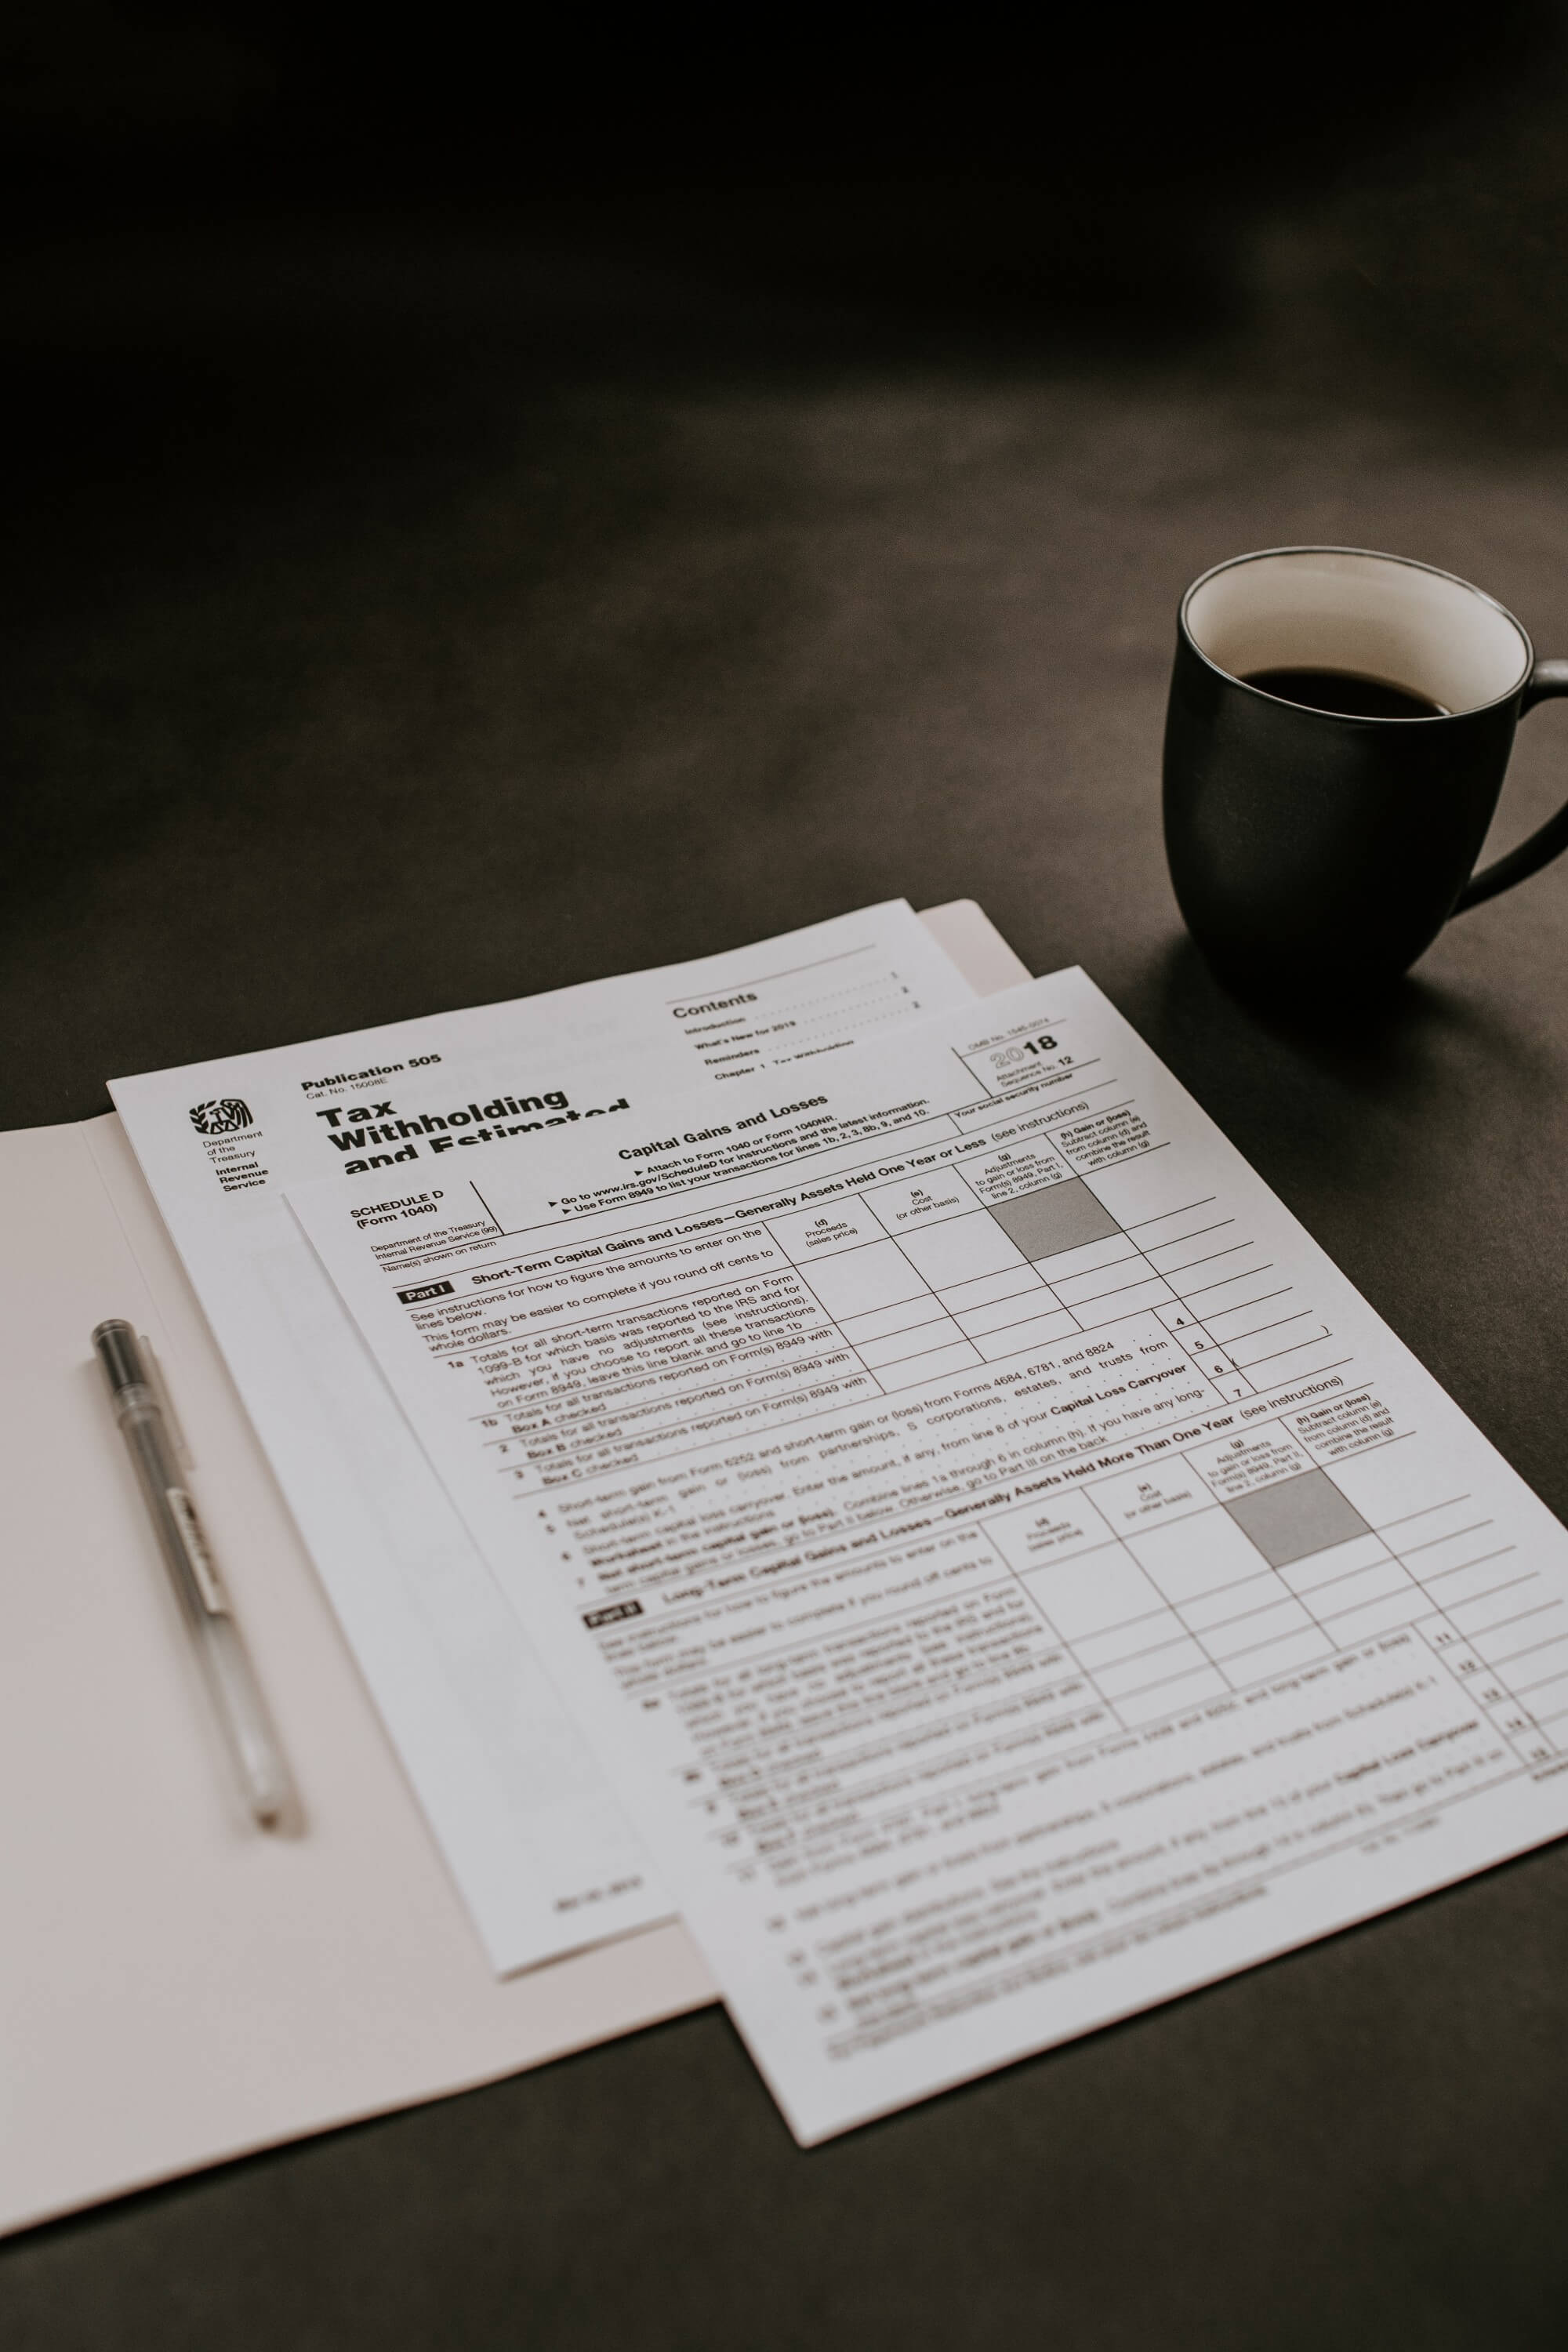 Folder with IRS forms on table